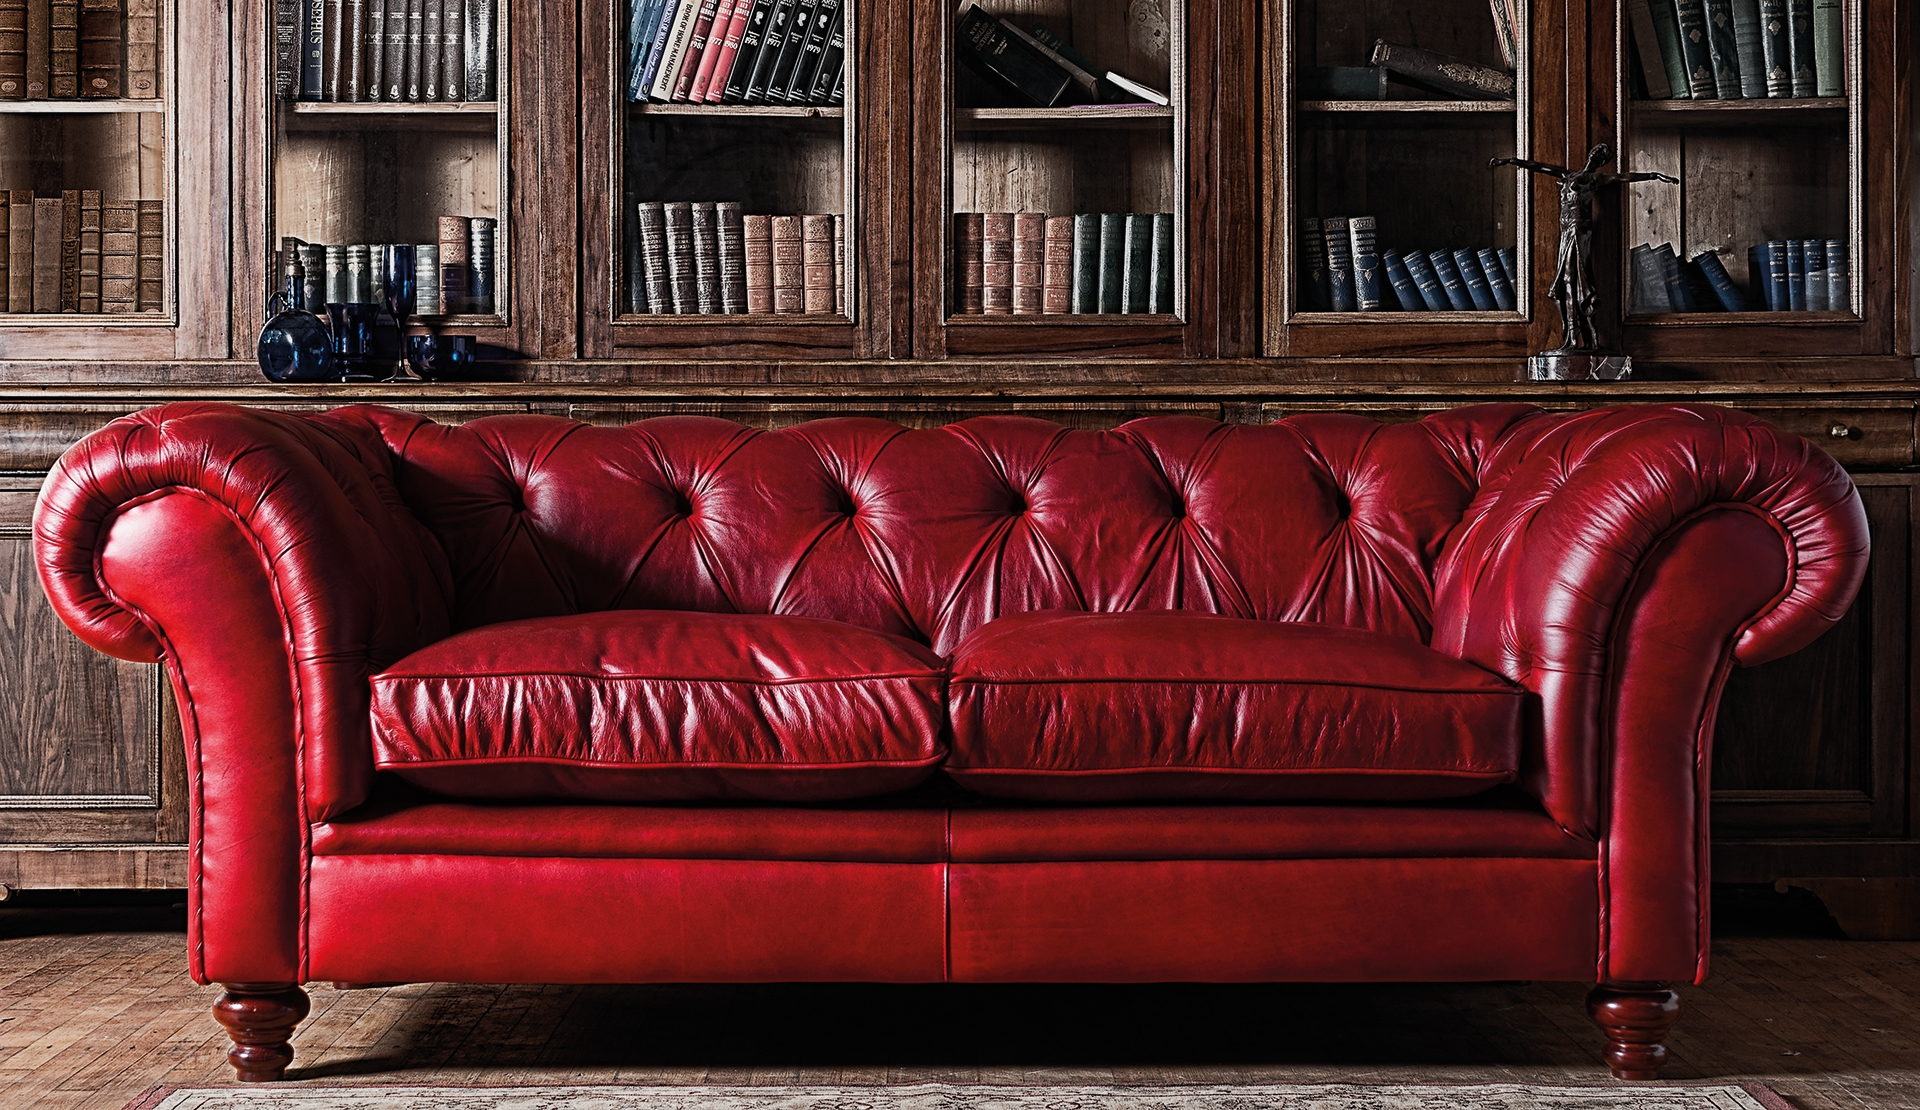 20 Reasons To Love Chesterfield Sofas Chesterfield Chesterfield Within Windsor Sofas (Image 1 of 15)